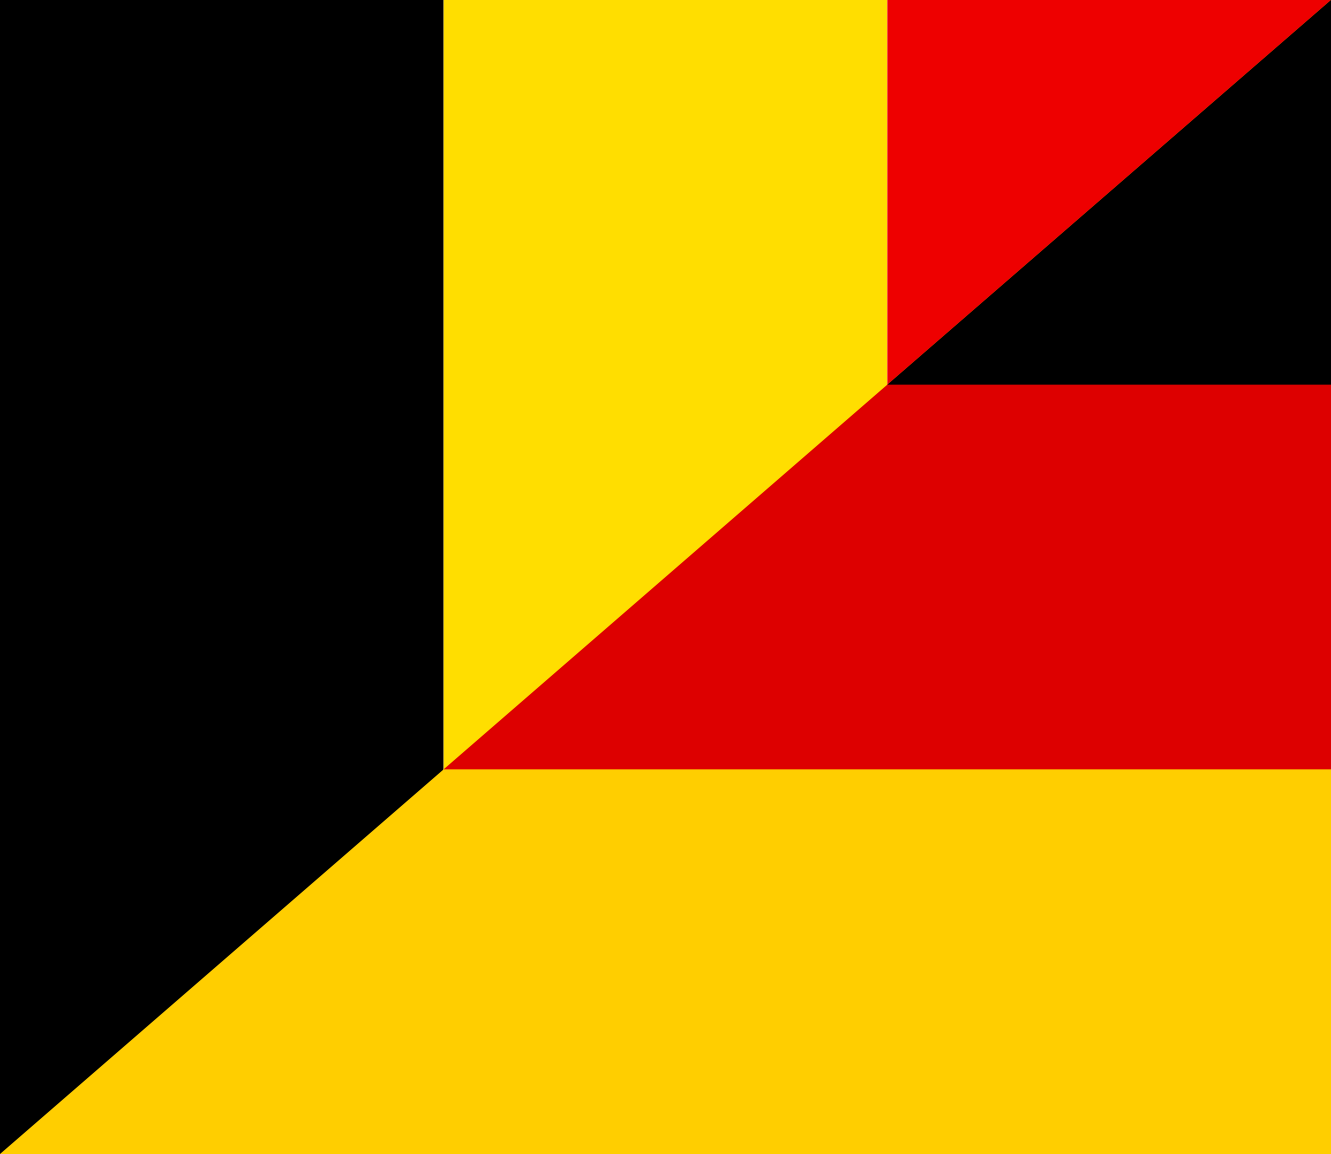 German Flag Clip Art Flag art flag of belgium and